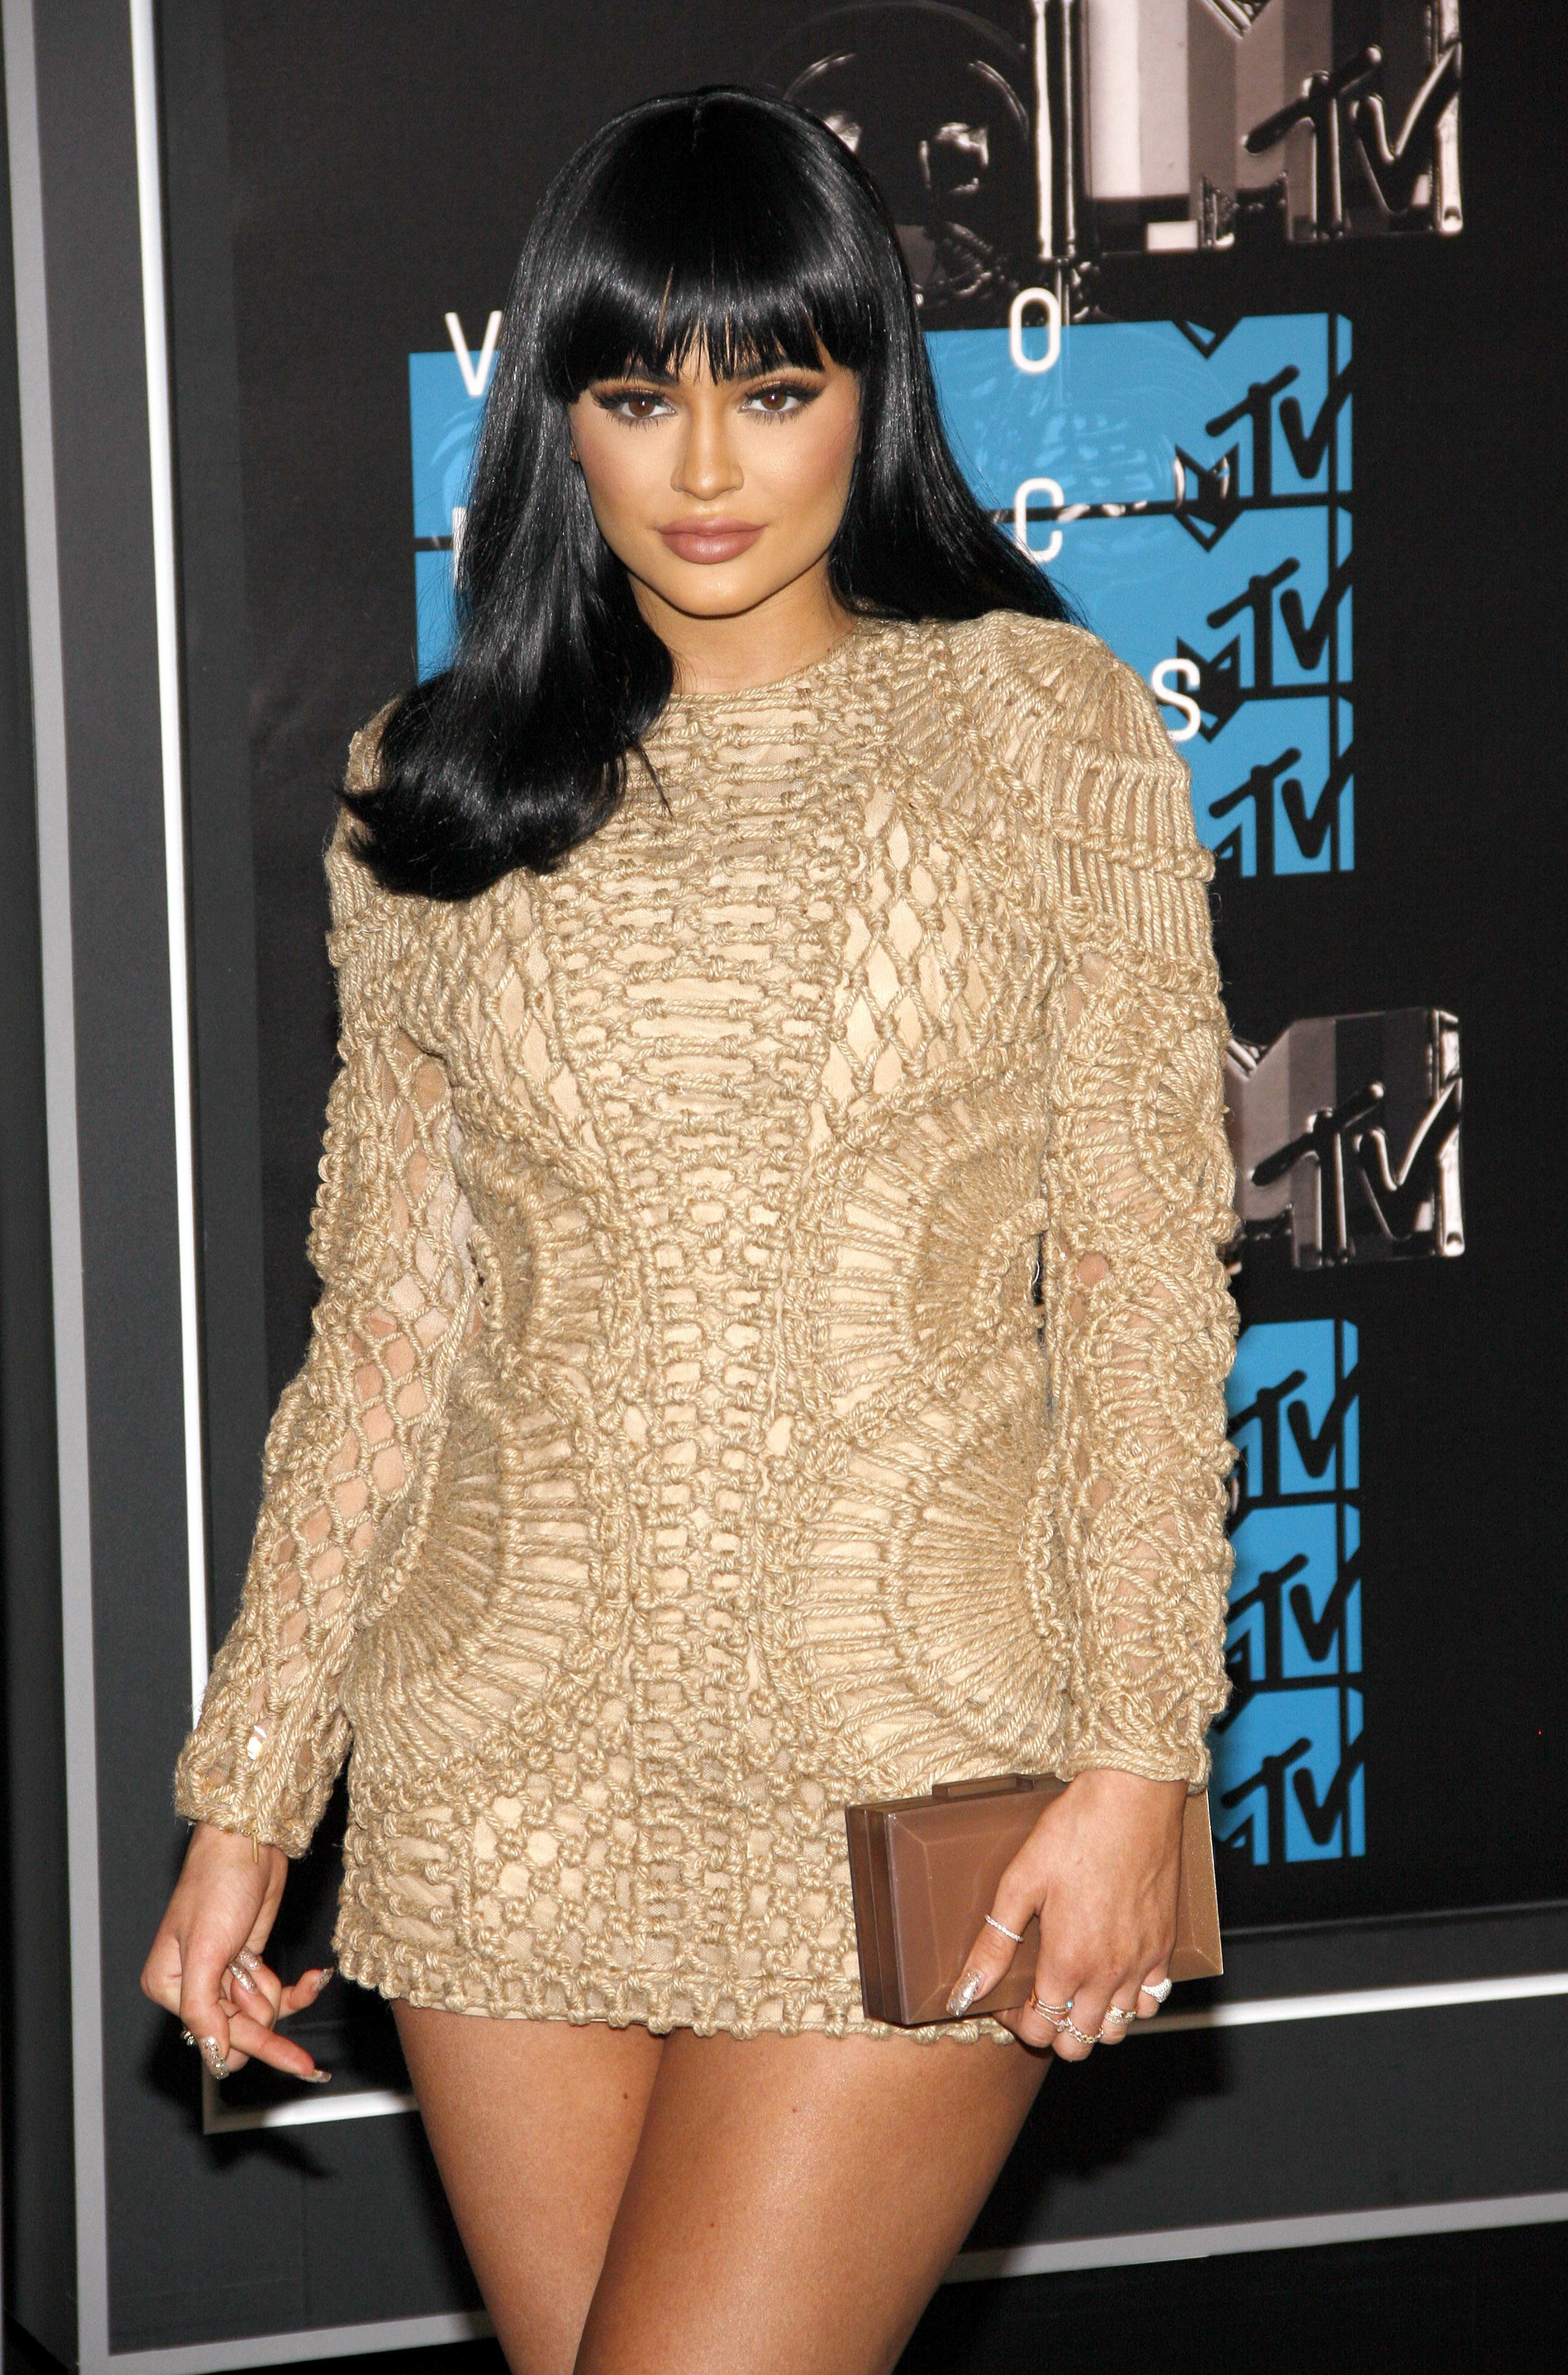 9. Kylie Jenner – August 10, 1997